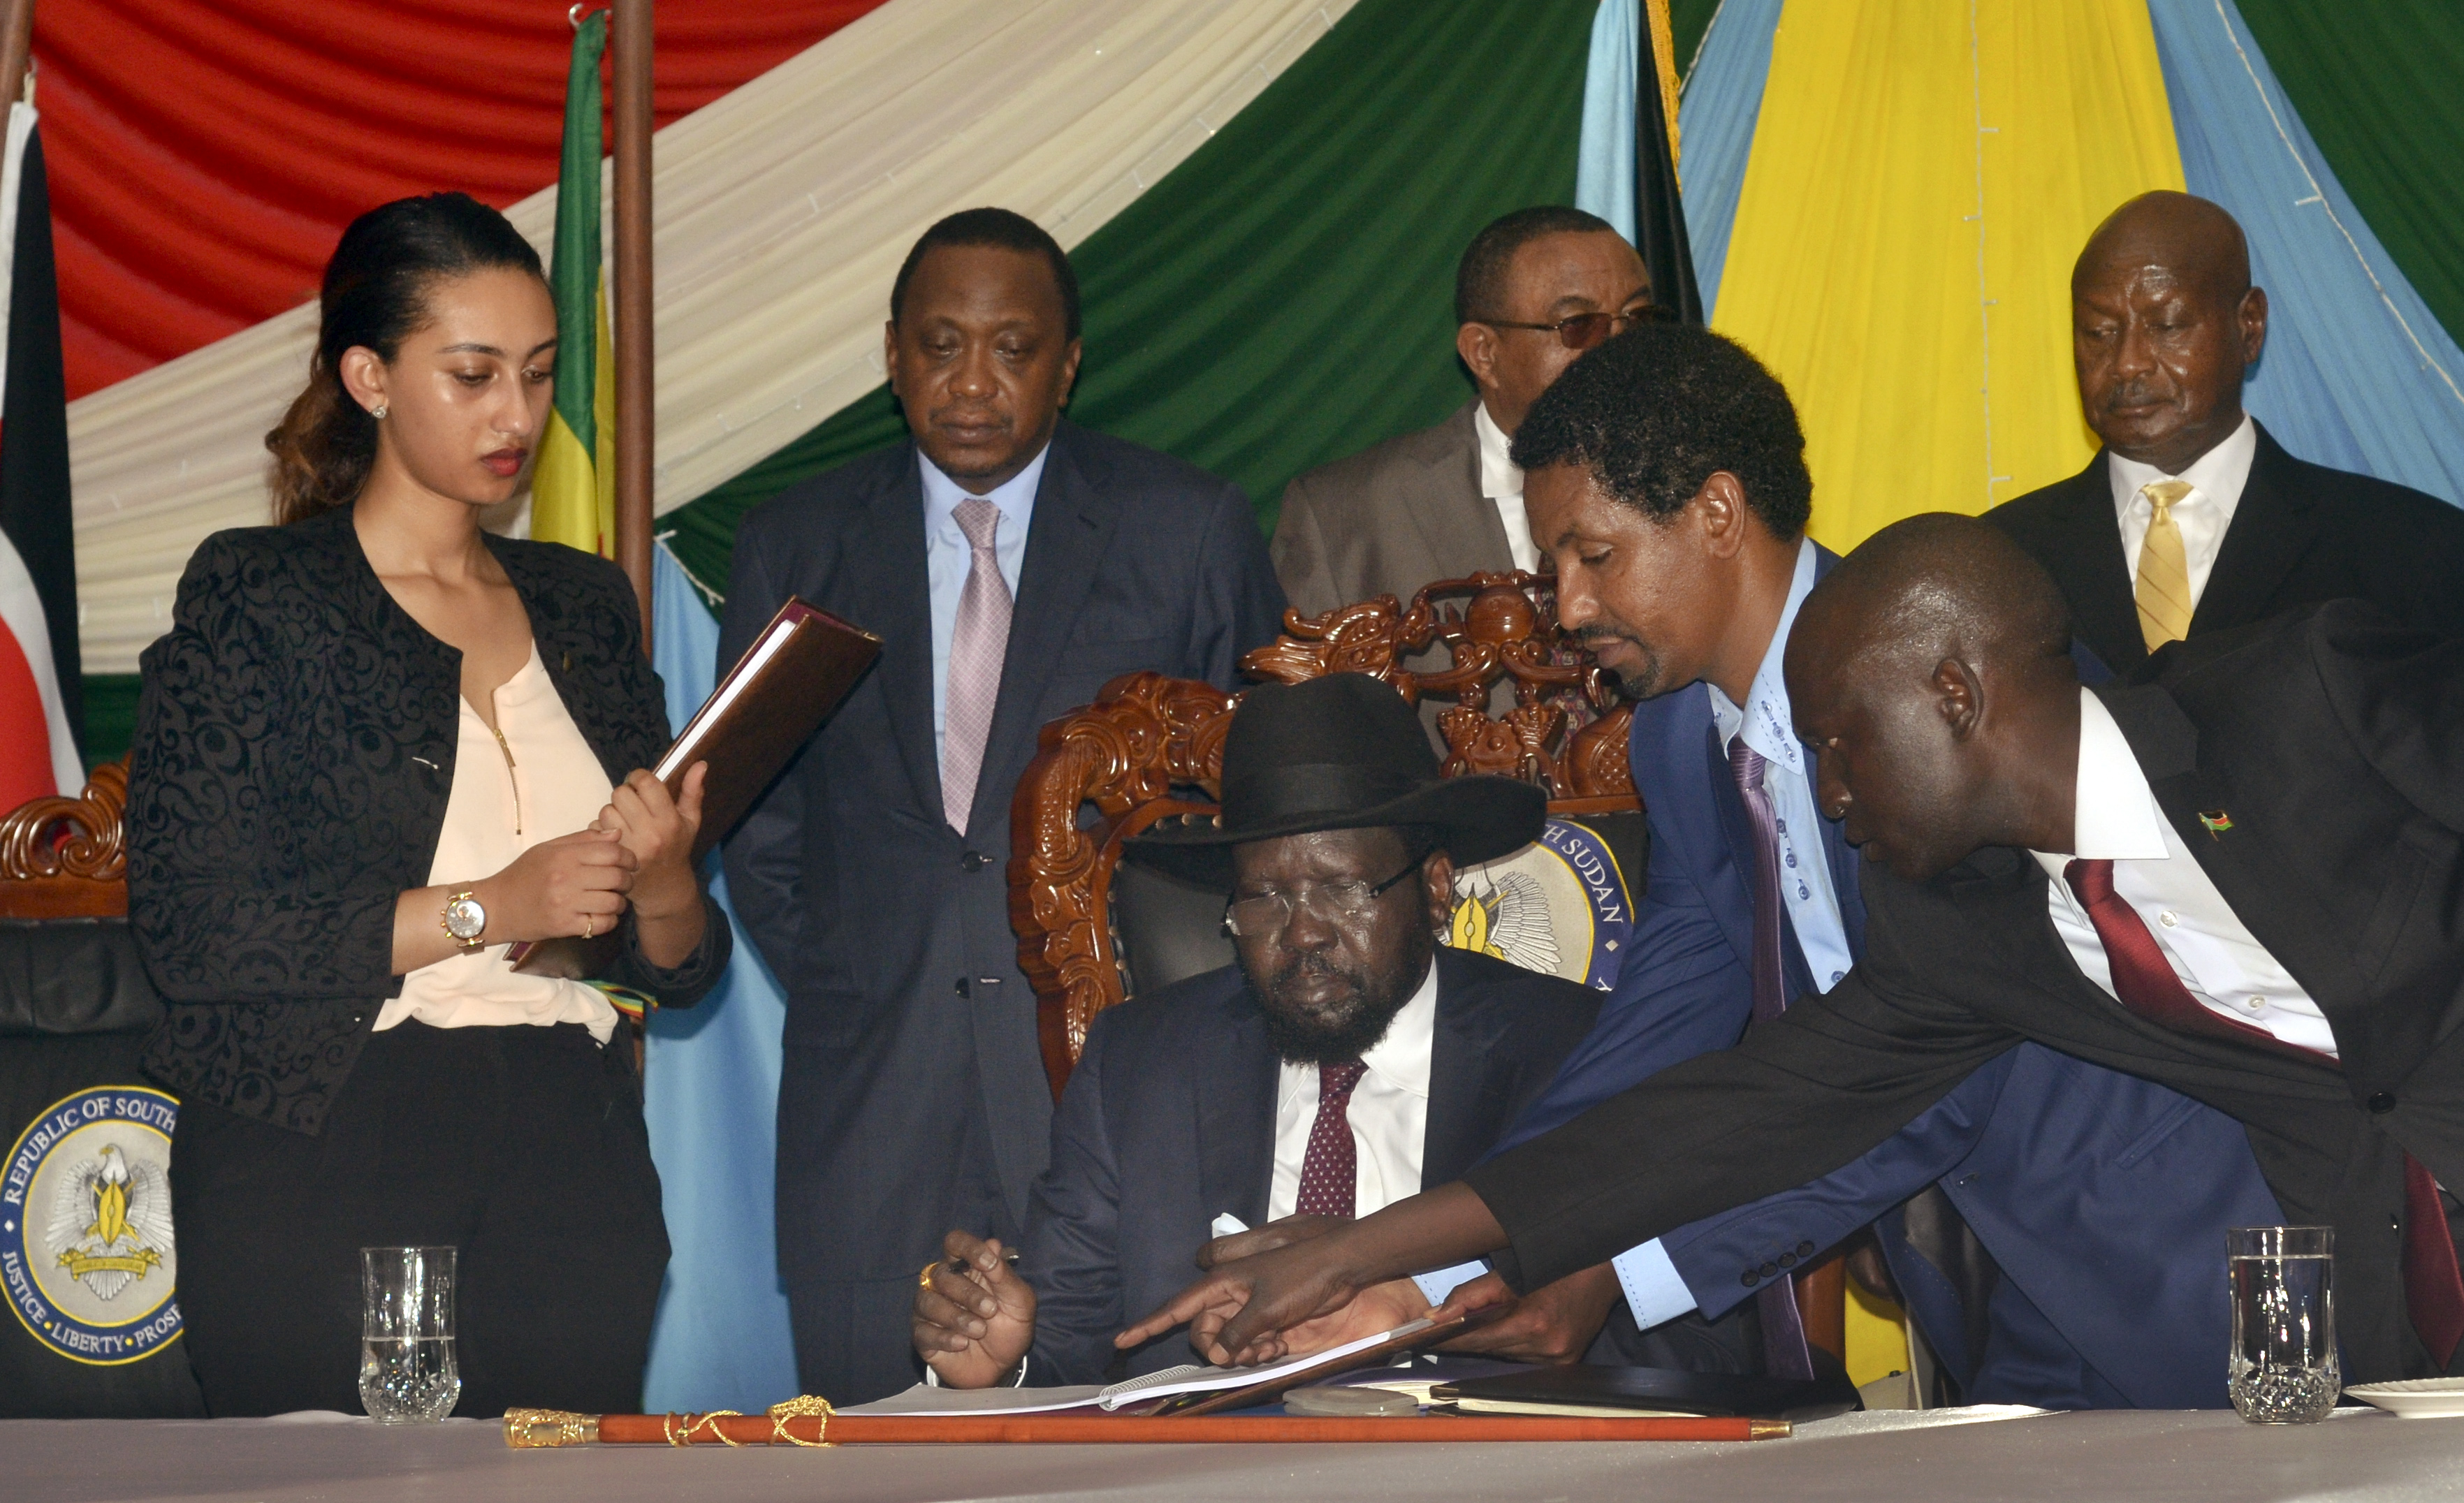 South Sudan President Salva Kiir, seated, signs a peace deal as Kenya's President Uhuru Kenyatta, center-left, Ethiopia's Prime Minister Hailemariam Desalegn, center-right, and Uganda's President Yoweri Museveni, right, look on in Juba, South S...